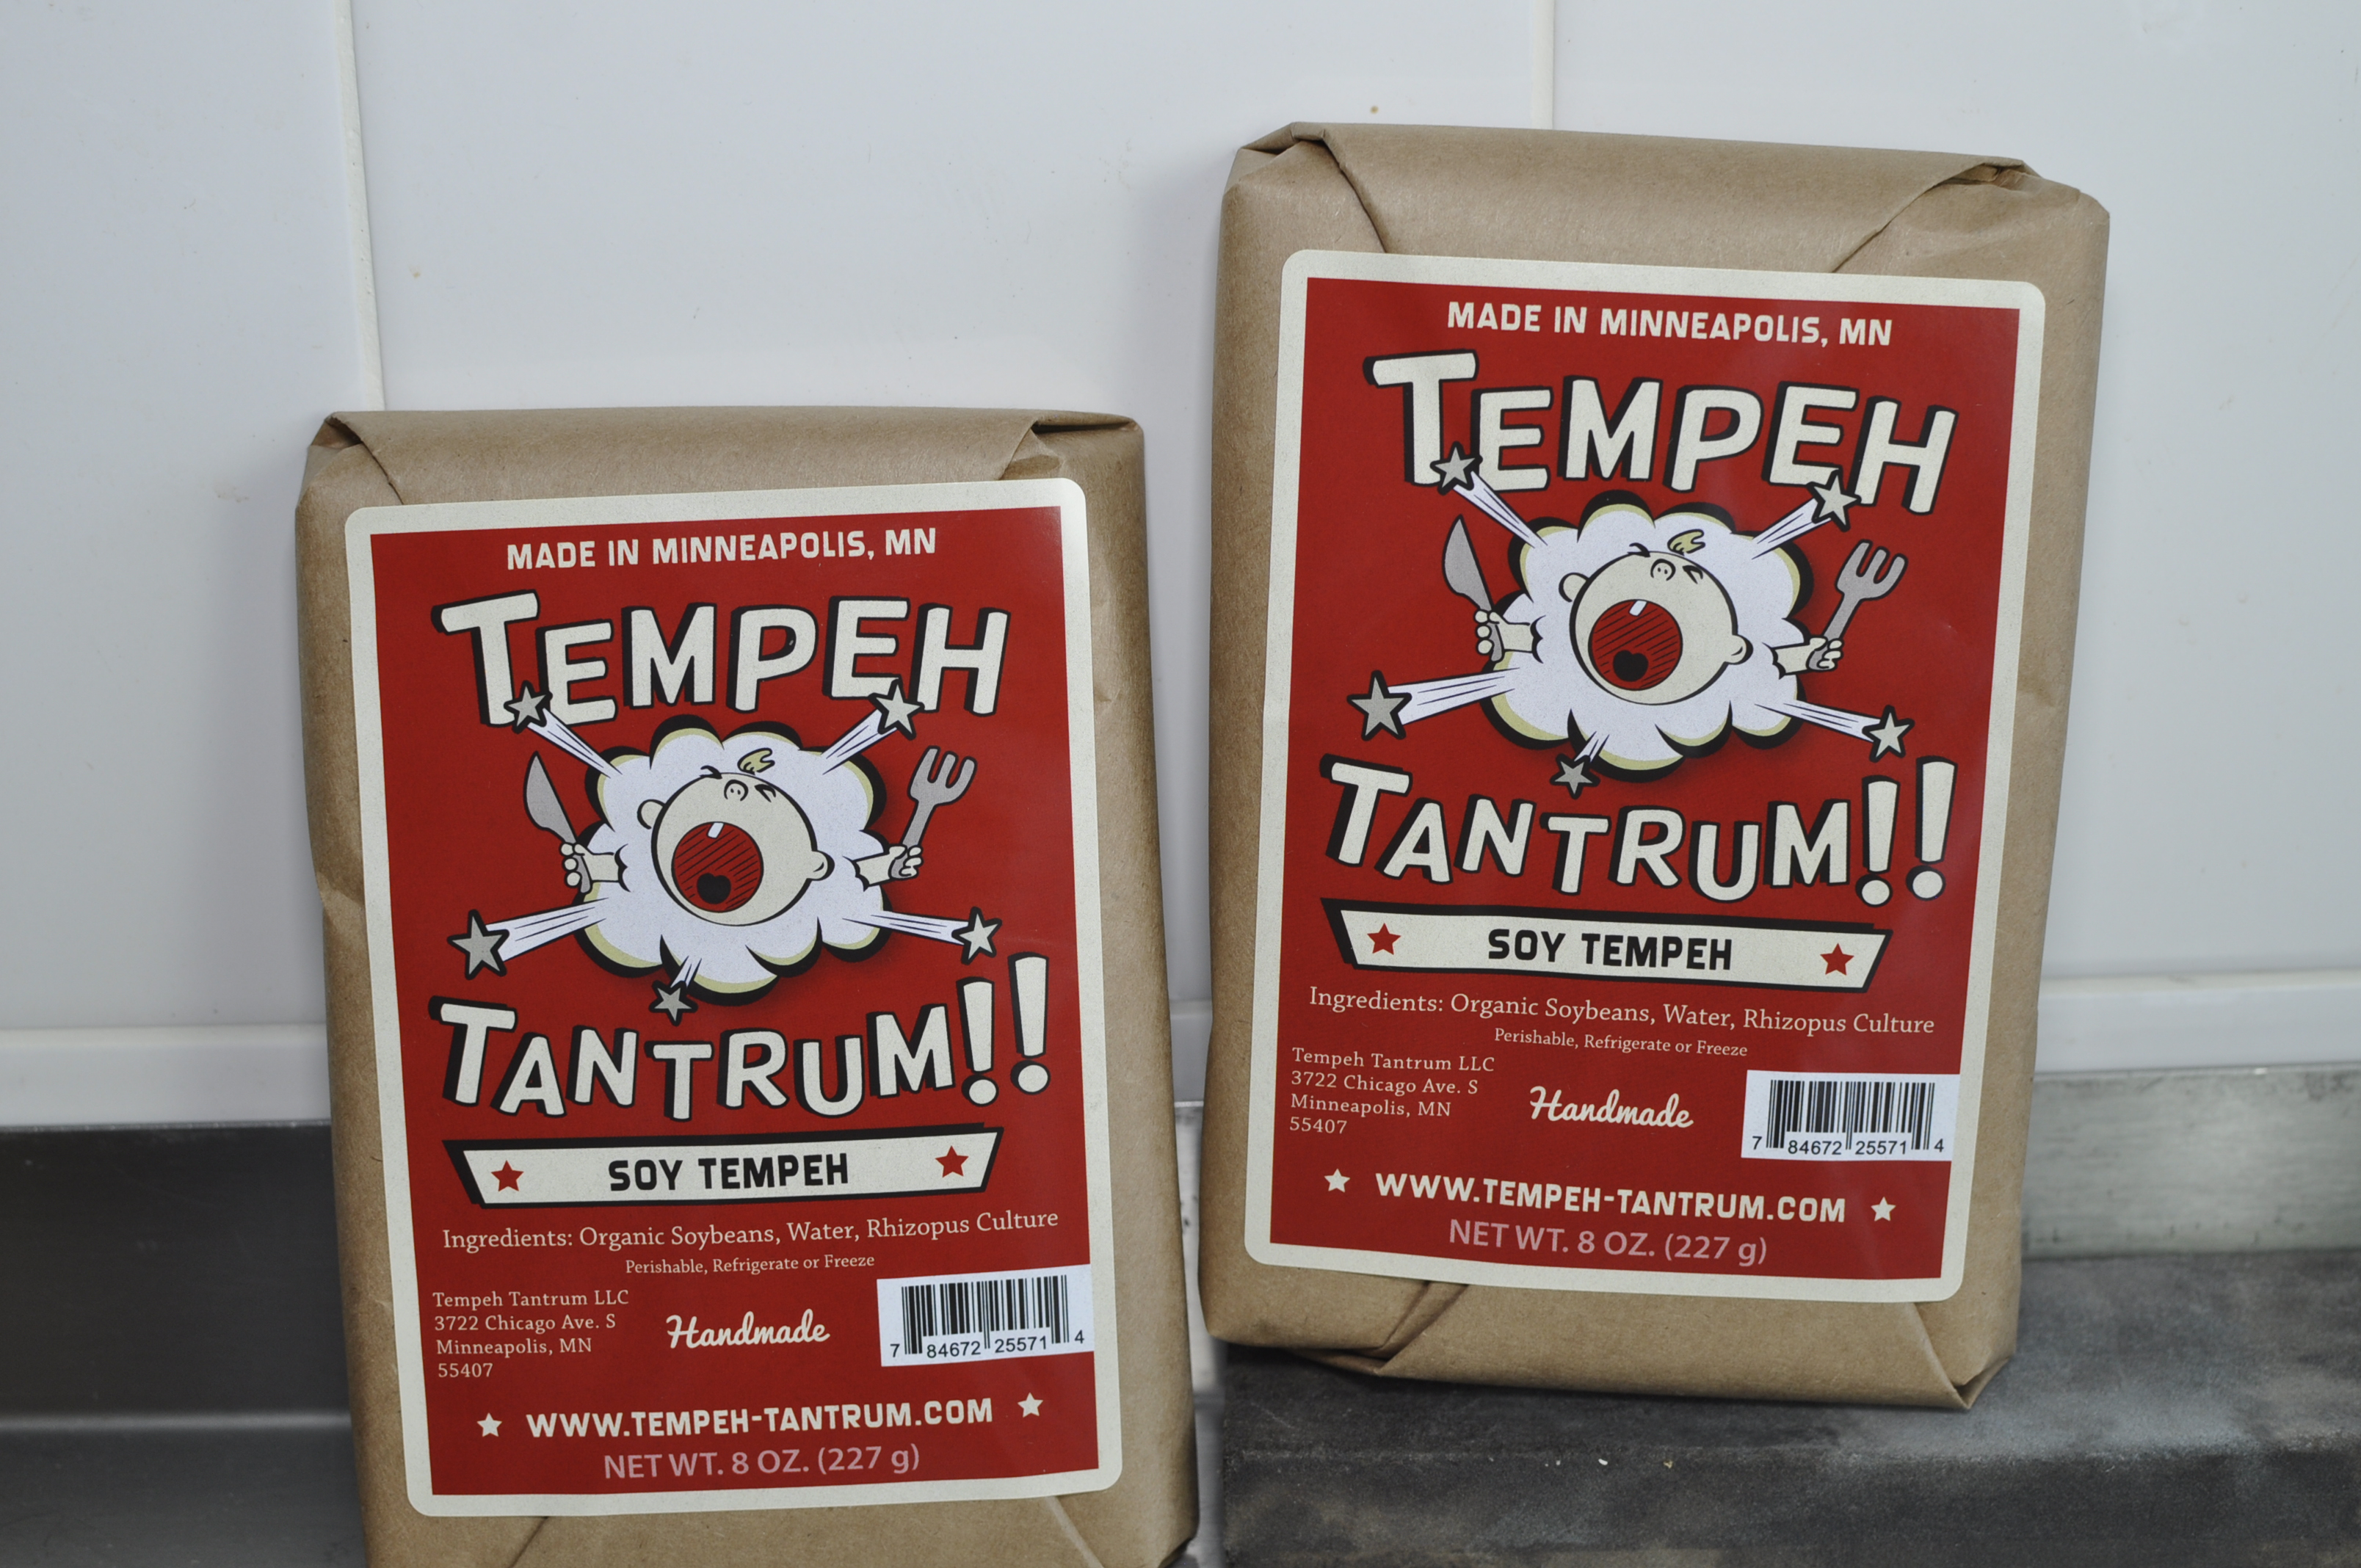 photo of packaged tempeh tantrum soy tempeh